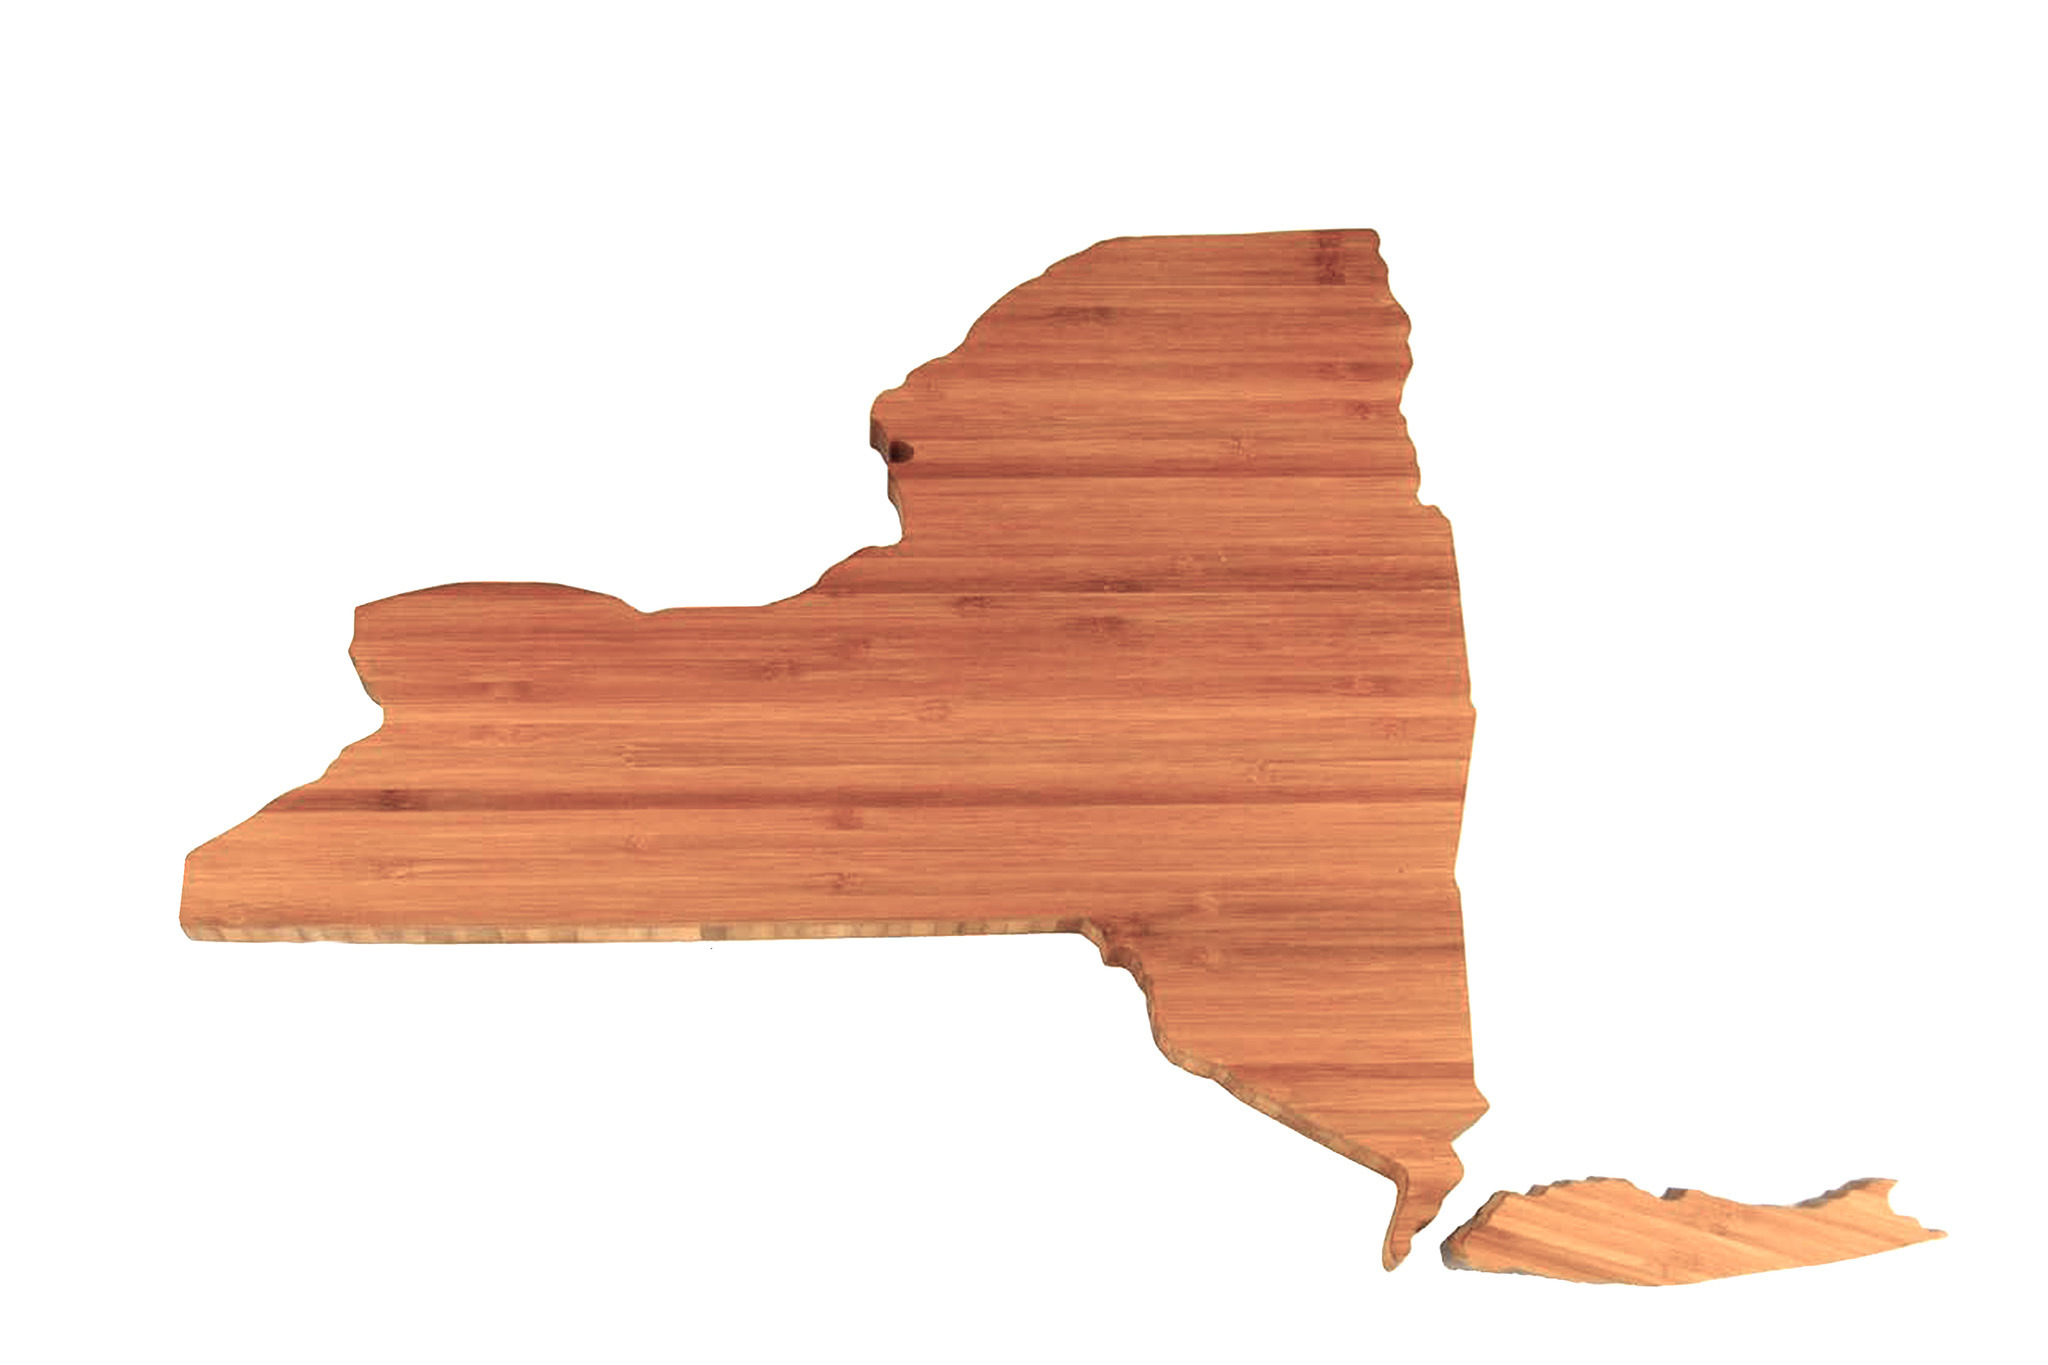 AHeirloom New York sustainable-bamboo cutting board